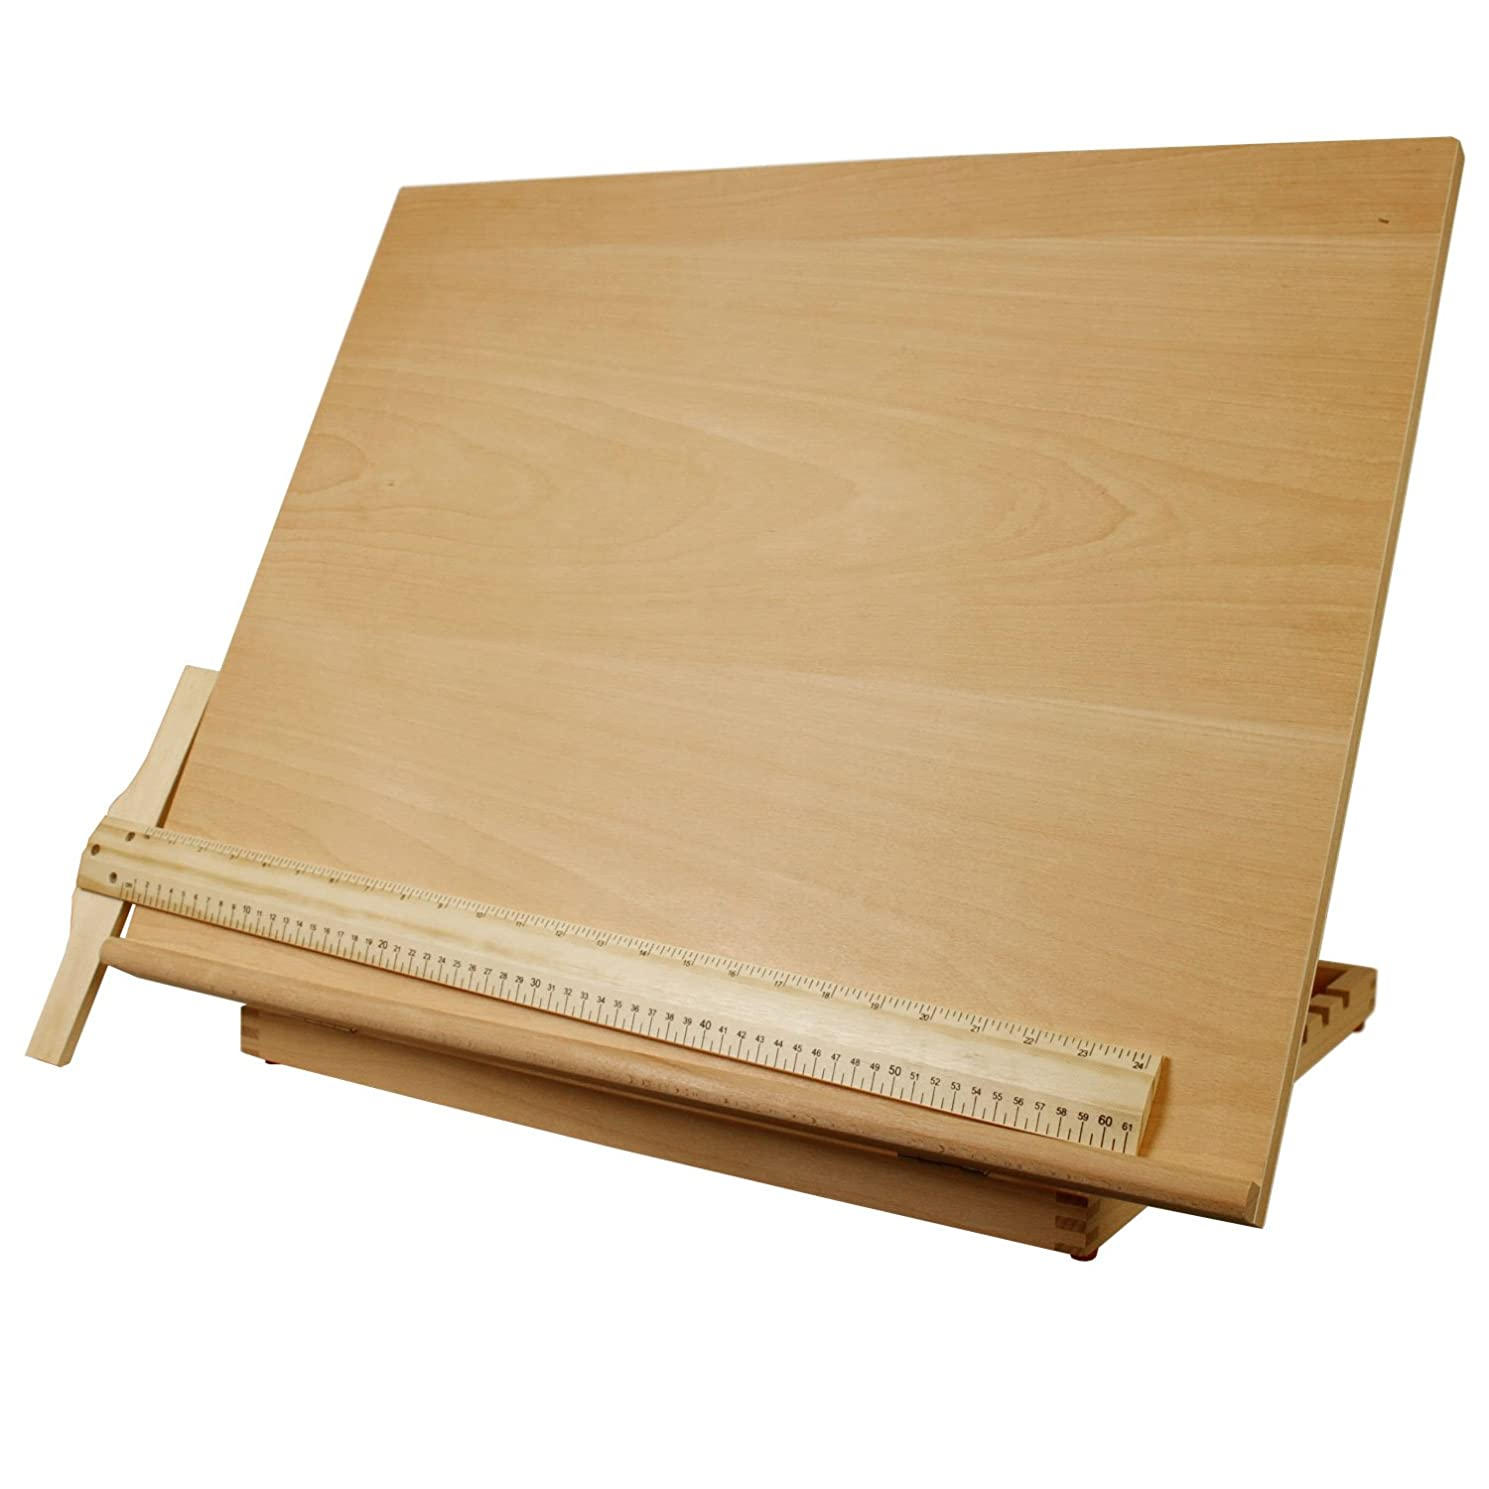 US Art Supply Extra Large Adjustable Wood Artist Drawing & Sketching Board 26